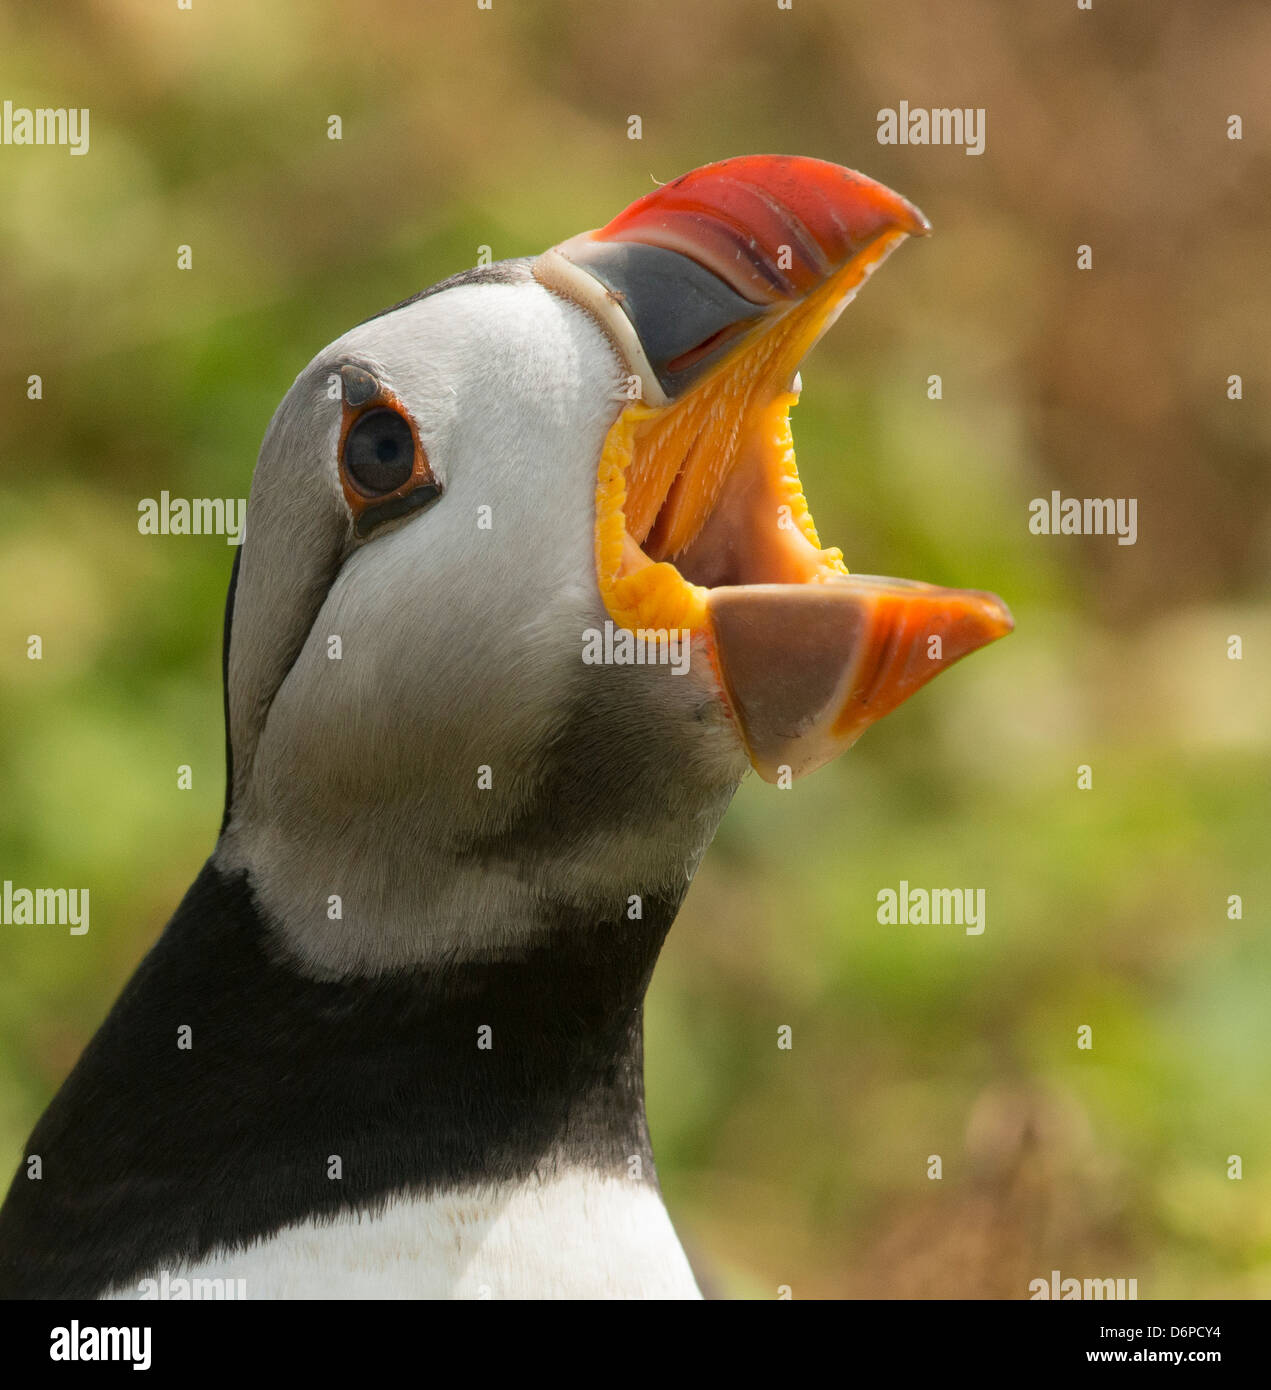 Puffin with gaping beak showing barbs in roof of beak, Wales, United Kingdom, Europe - Stock Image